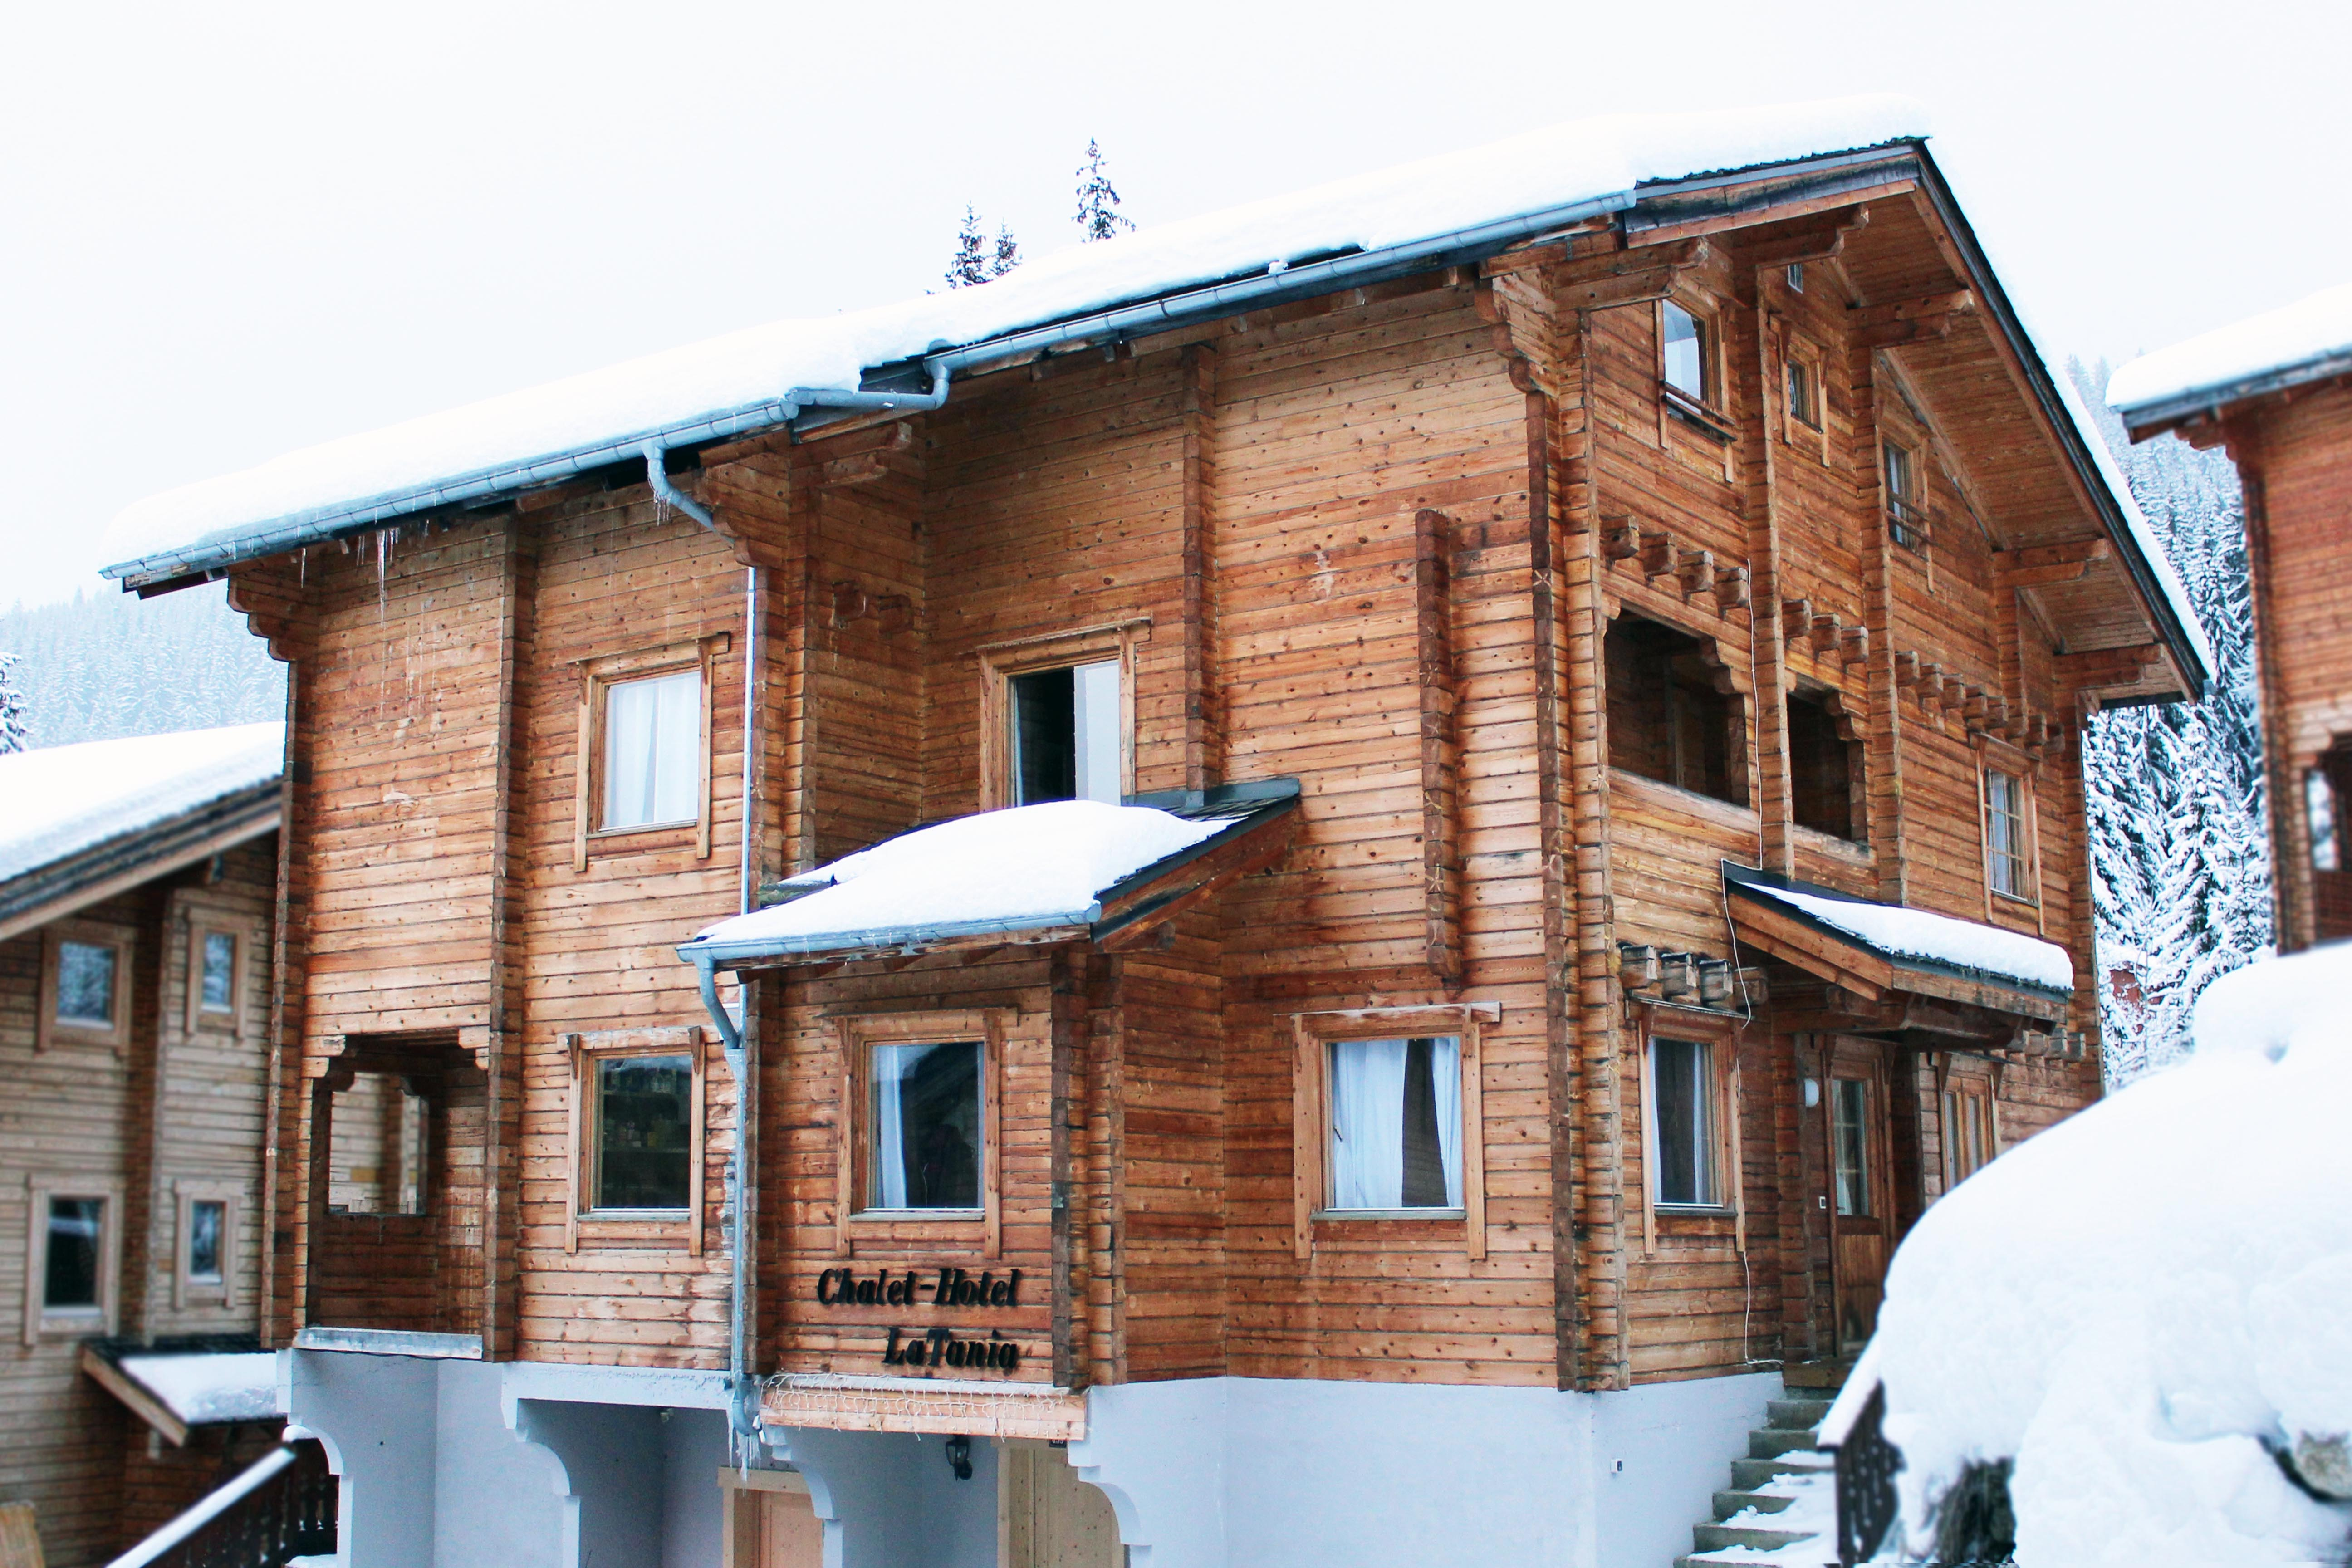 chalet-hotel outside